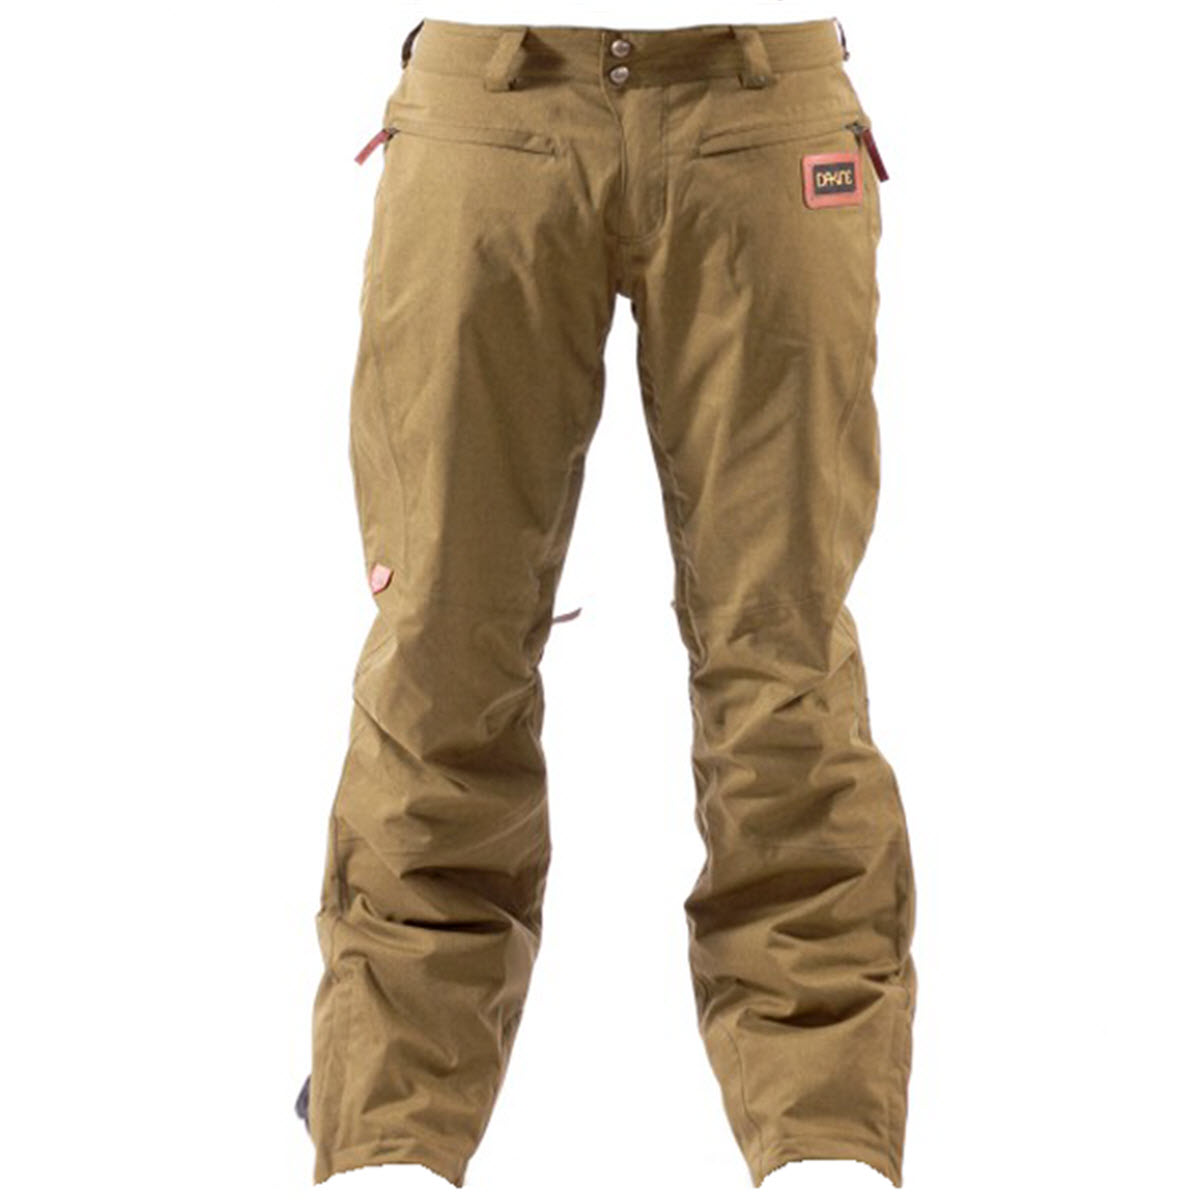 Dakine Womens Alia Snowboard Pants 2014 Army Heather Medium